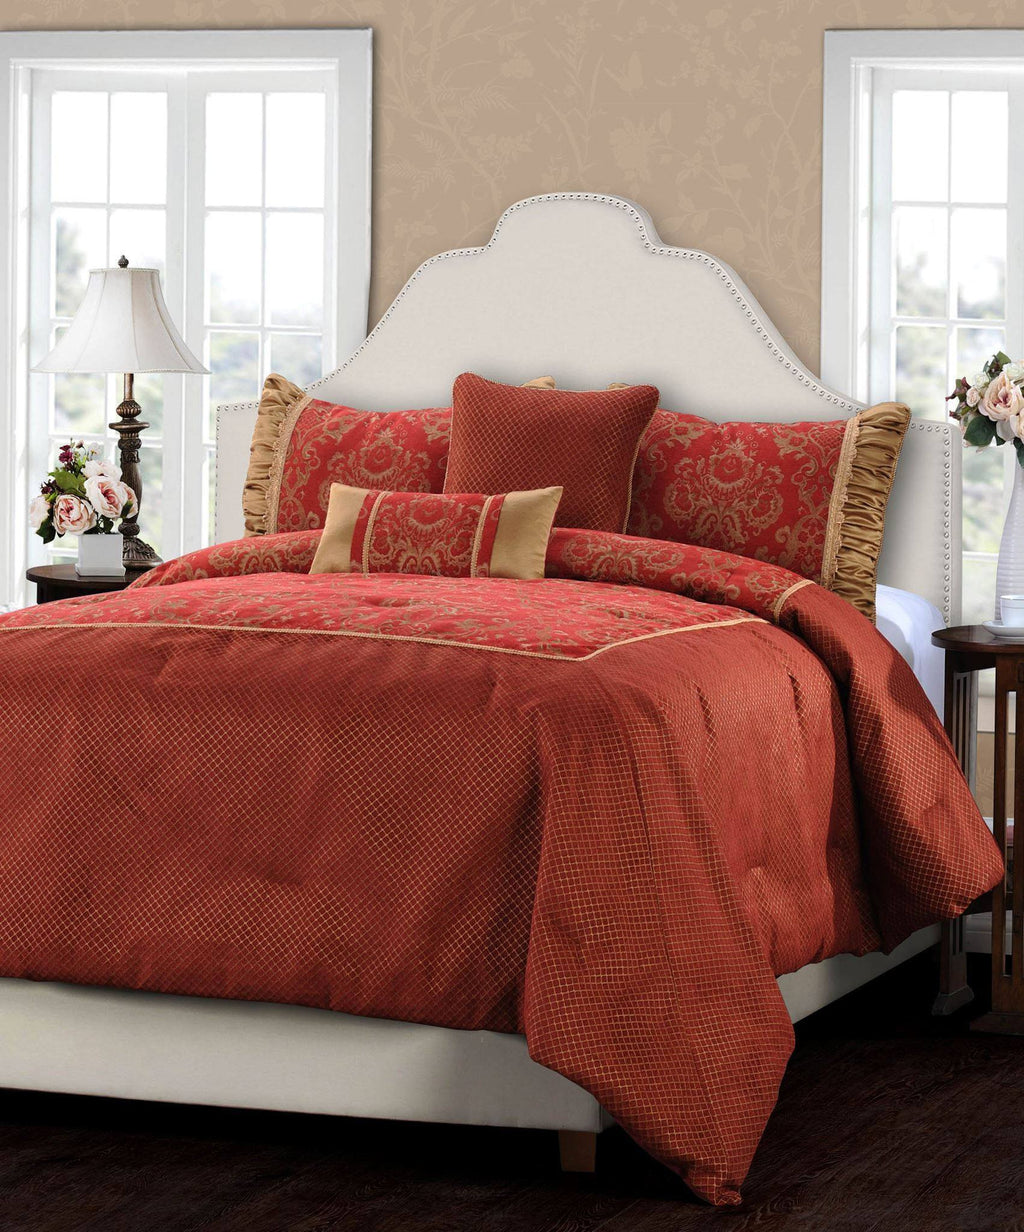 Jennifer Taylor 5 Piece Comforter Set in Red and Gold   upgrading quality.myshopify.com